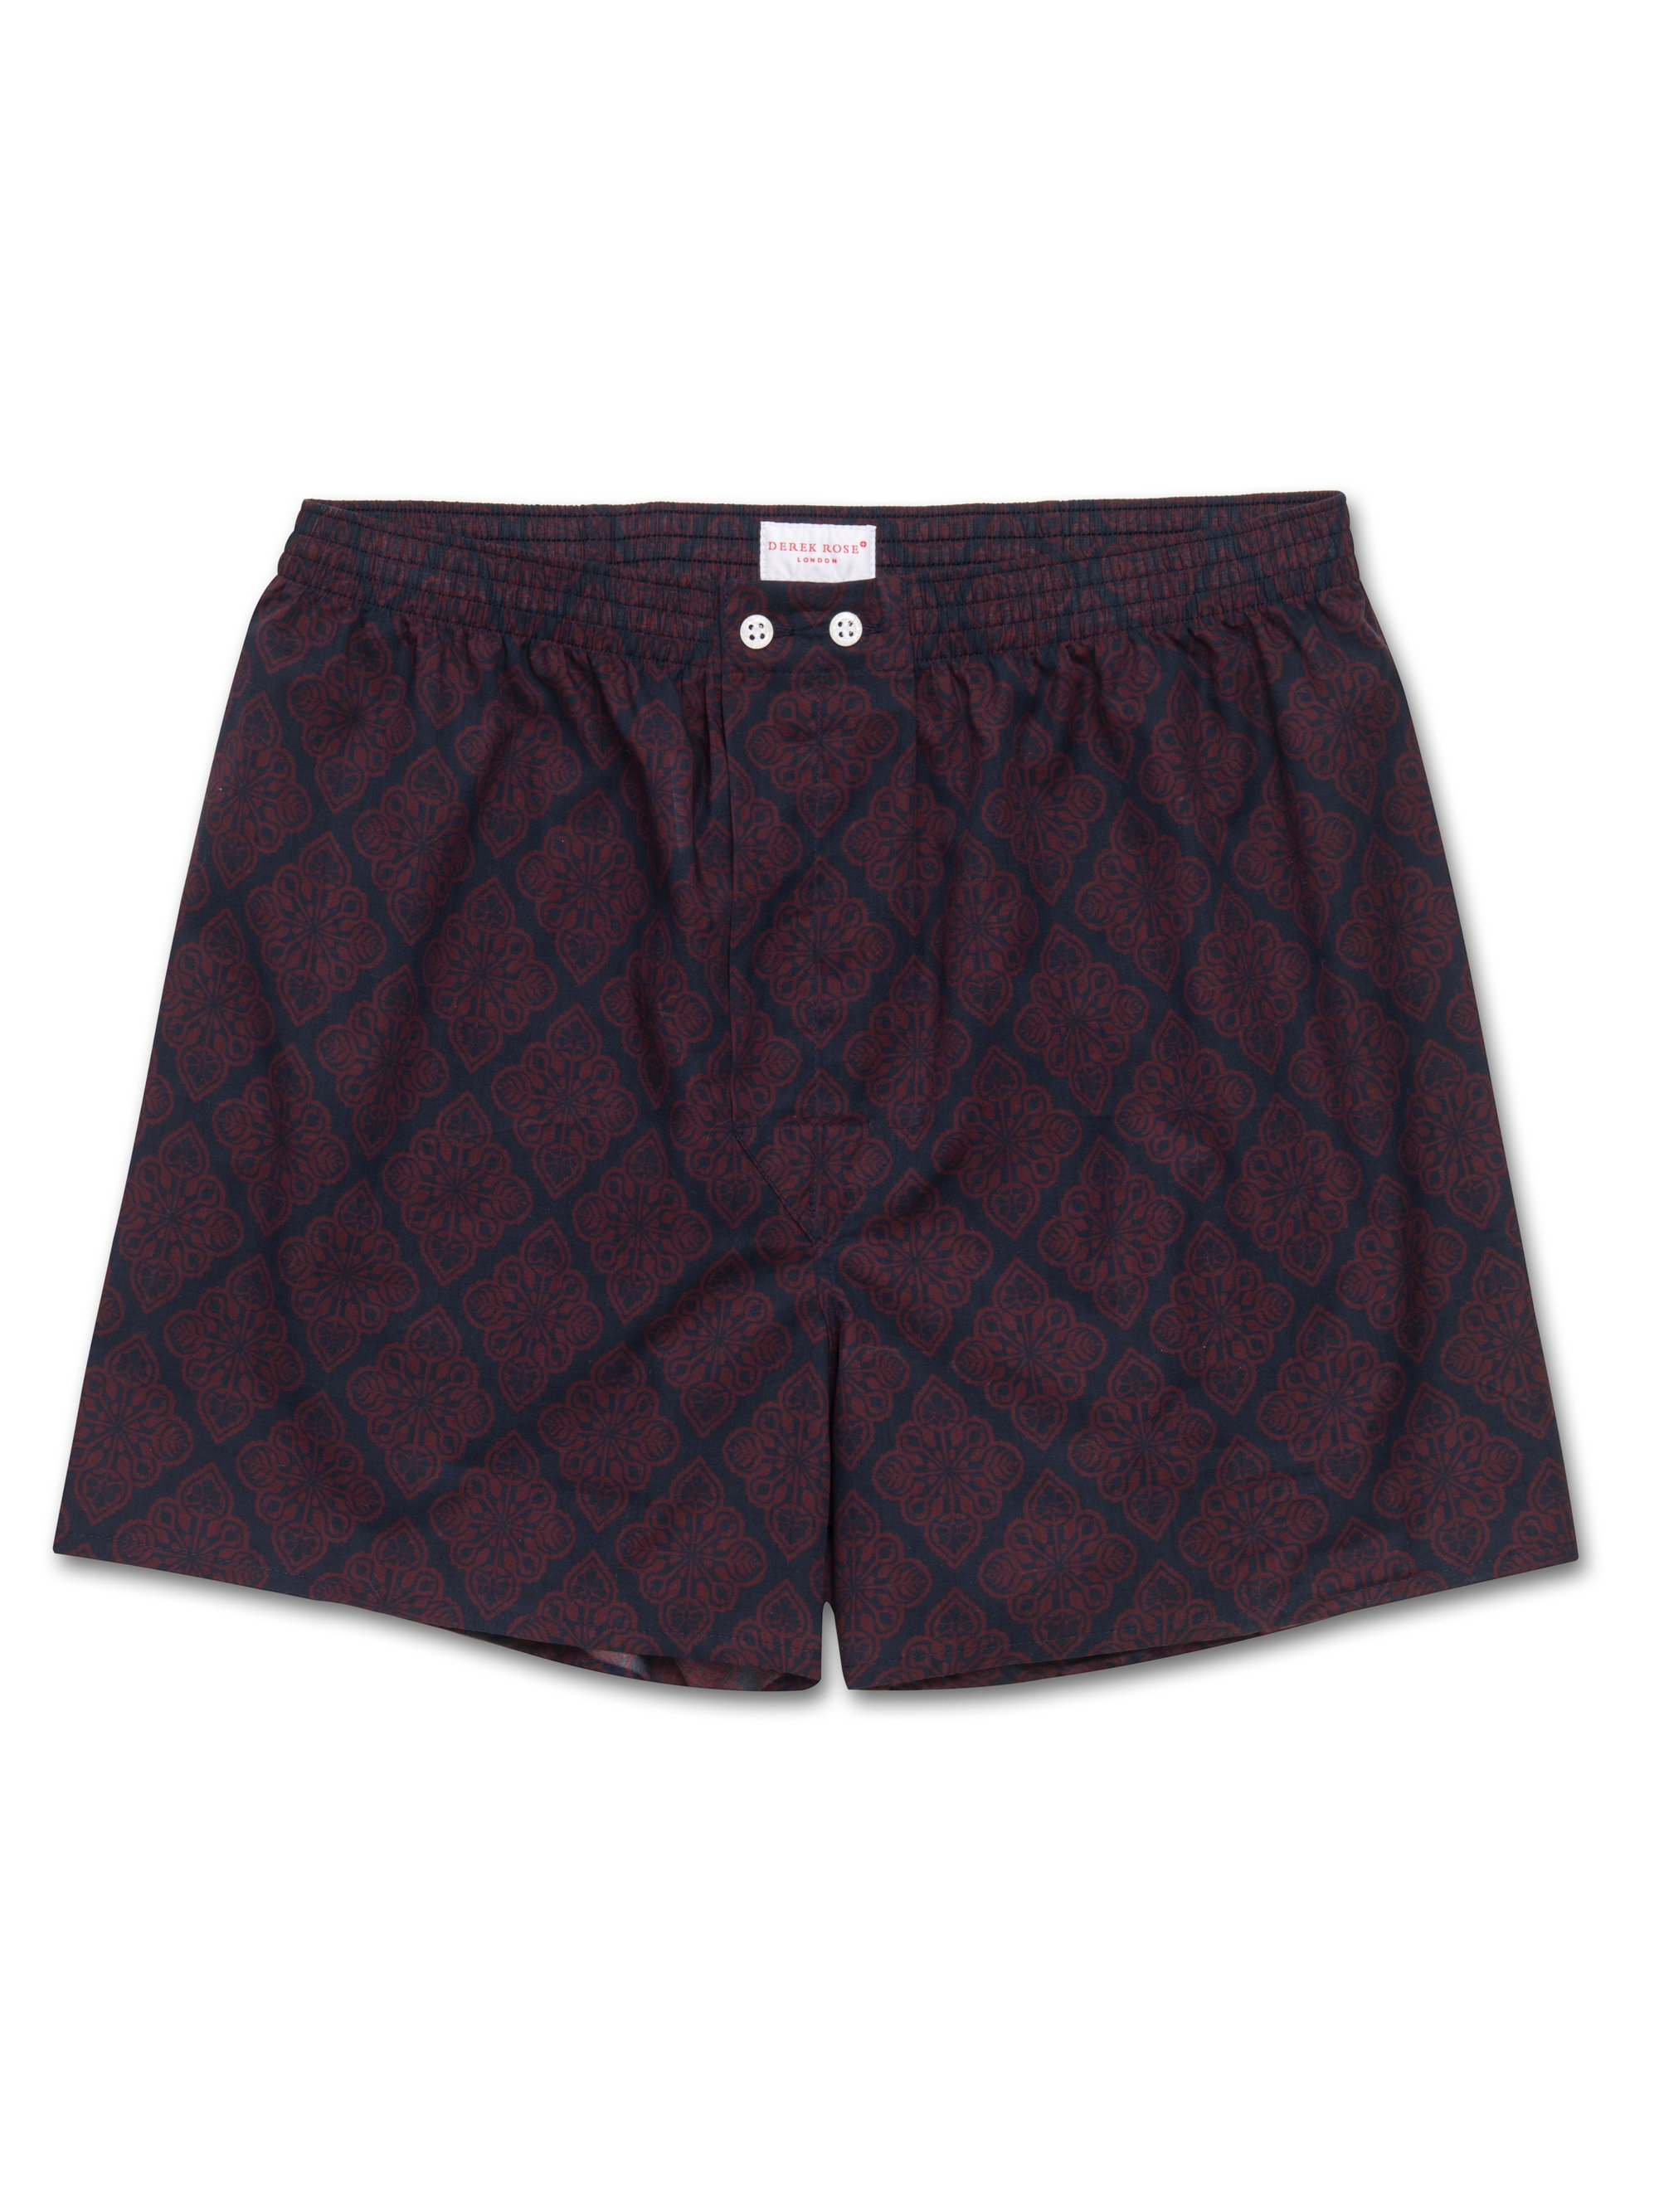 Men's Classic Fit Boxer Shorts Nelson 56 Batiste Burgundy